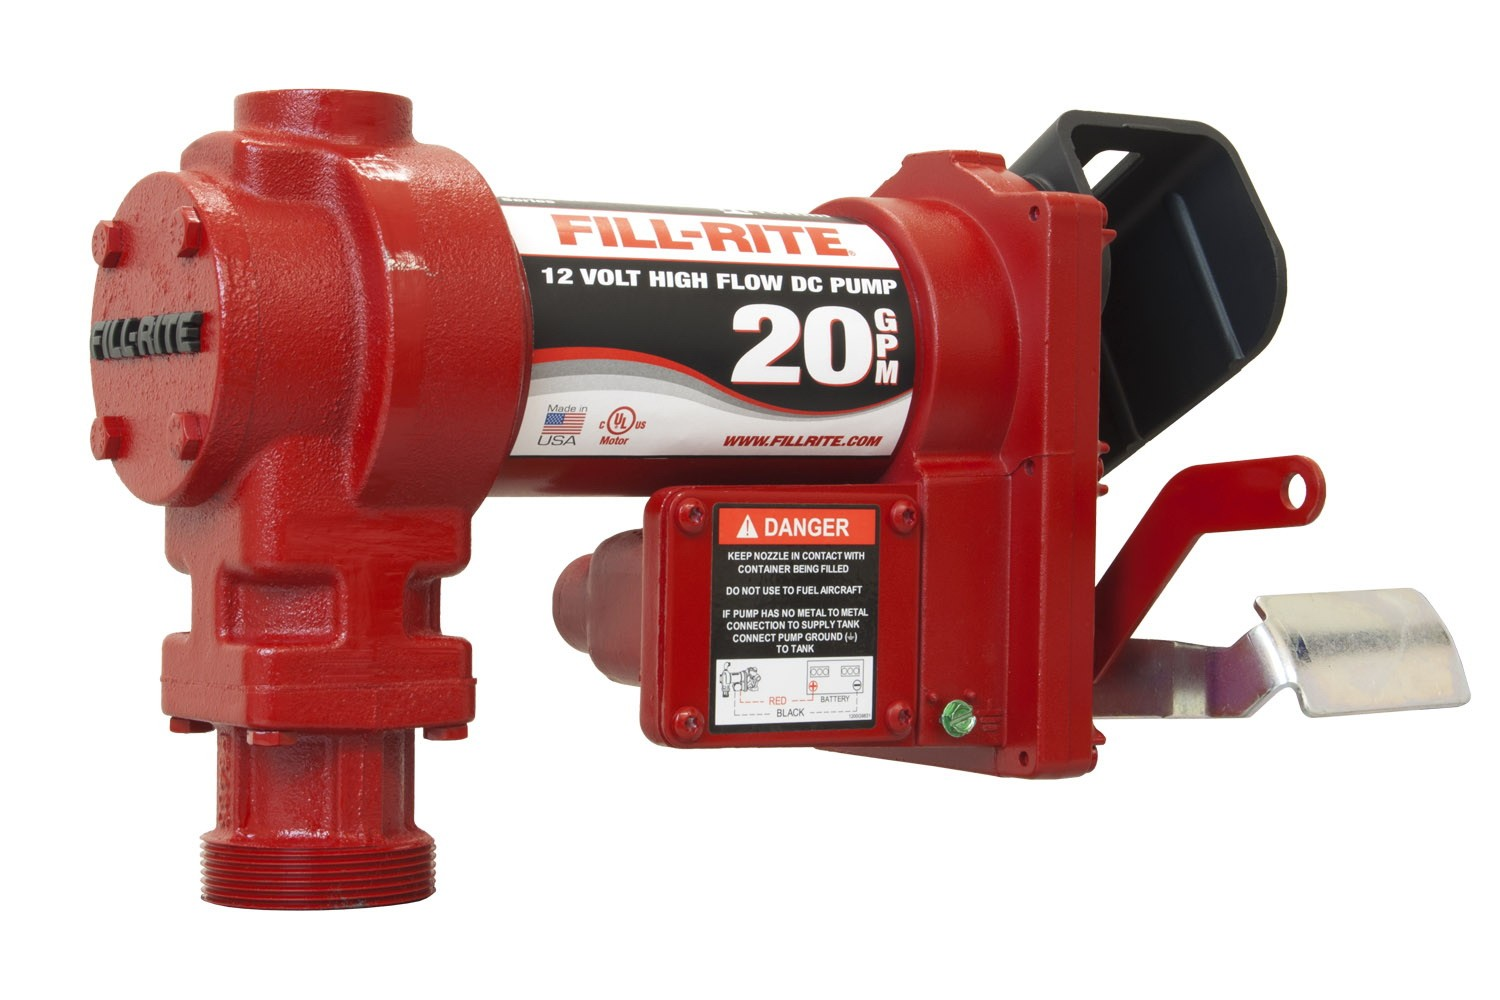 Fill-Rite FR4204G 12V DC Hi-Flow Pump (Pump Only) (20 GPM)